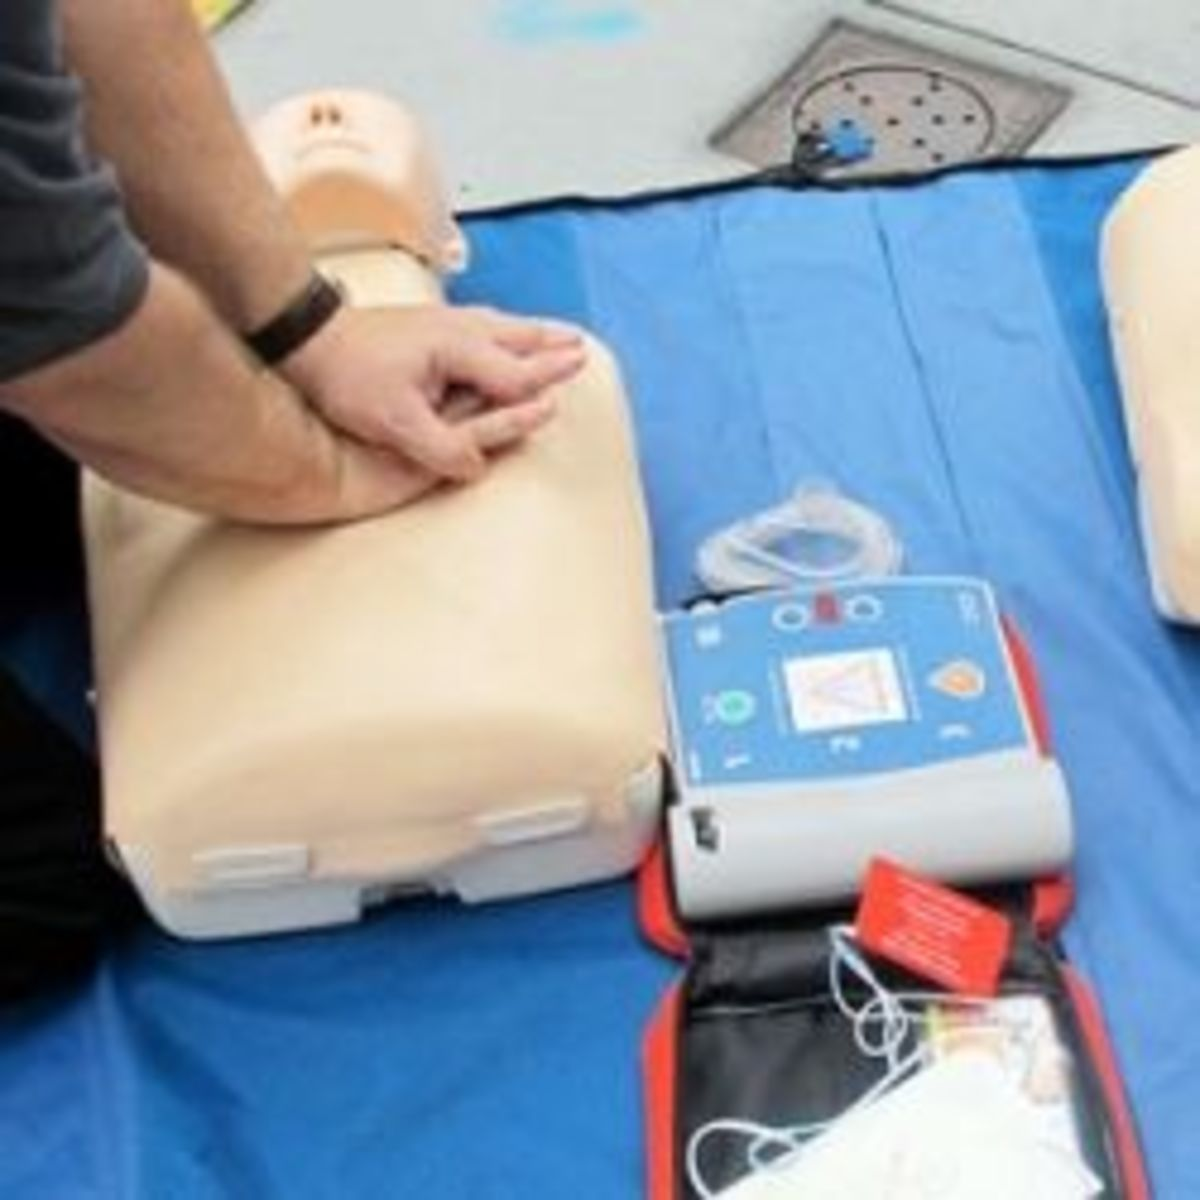 how-does-a-defibrillator-work